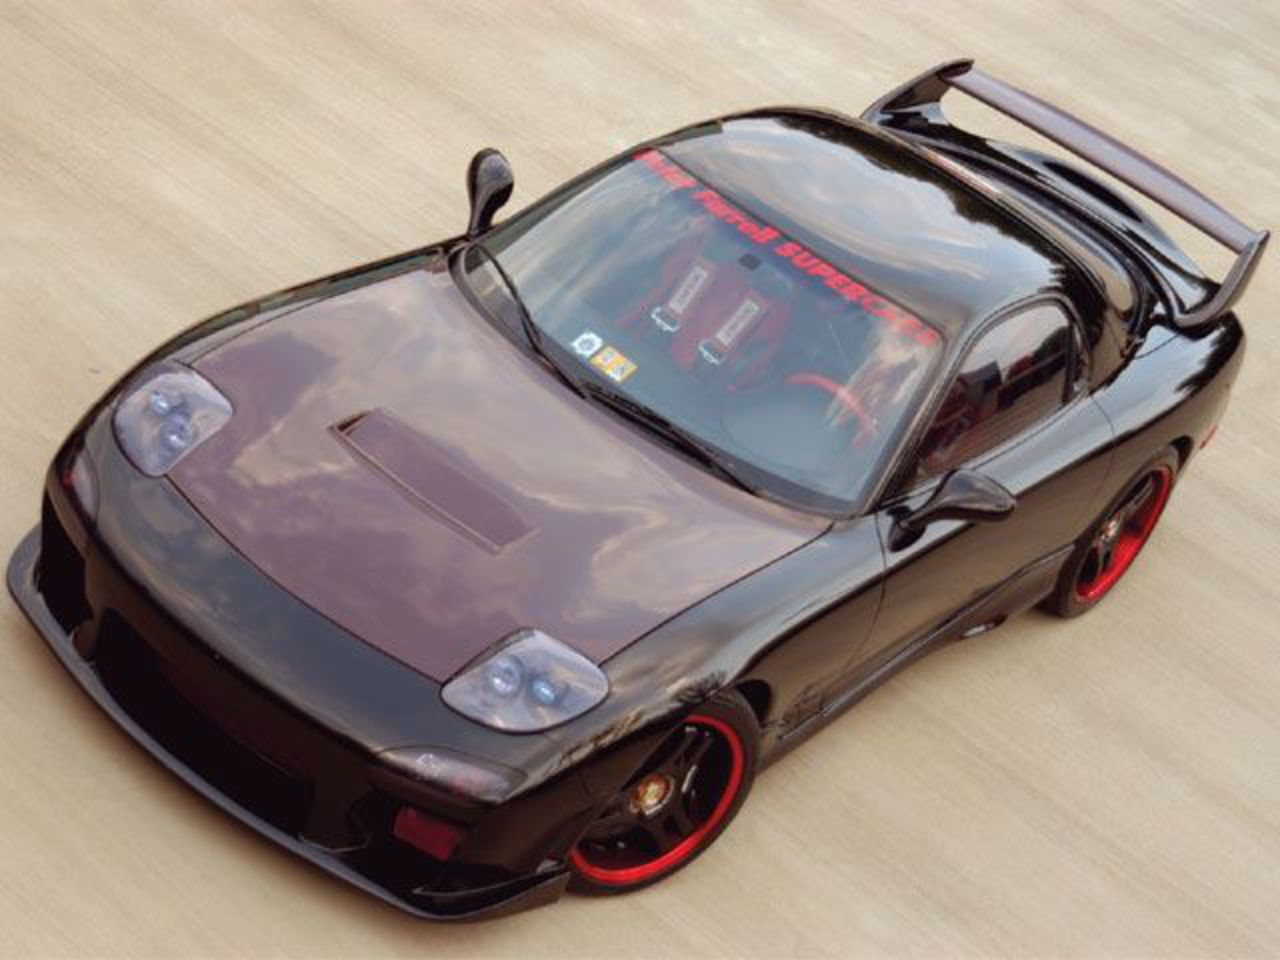 Mazda RX-7 Twin Turbo — a model manufactured by Mazda.